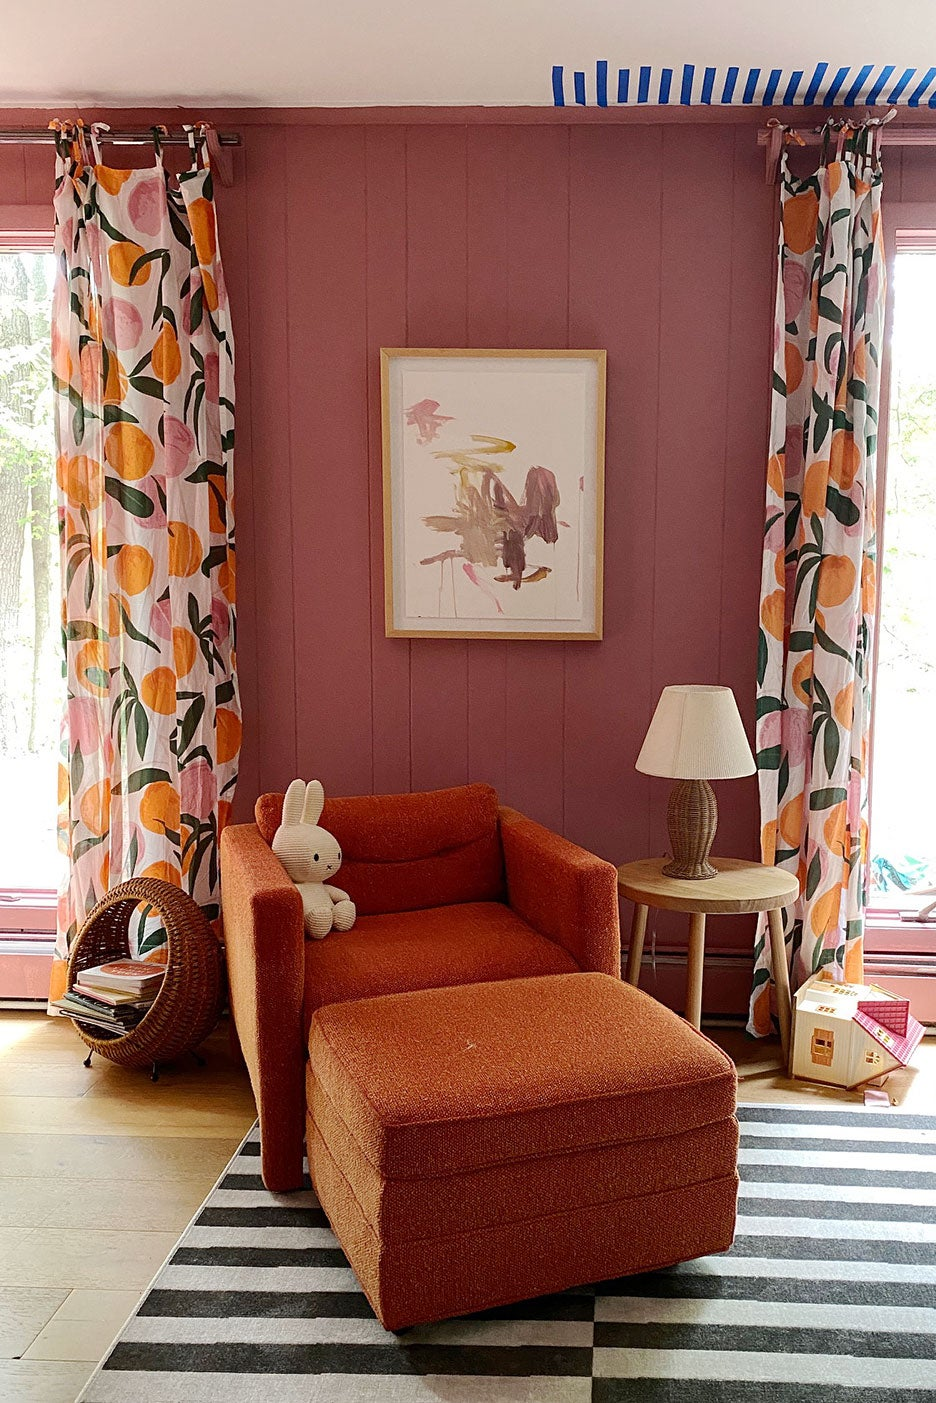 pink room with orange-printed curtains and orange armchair